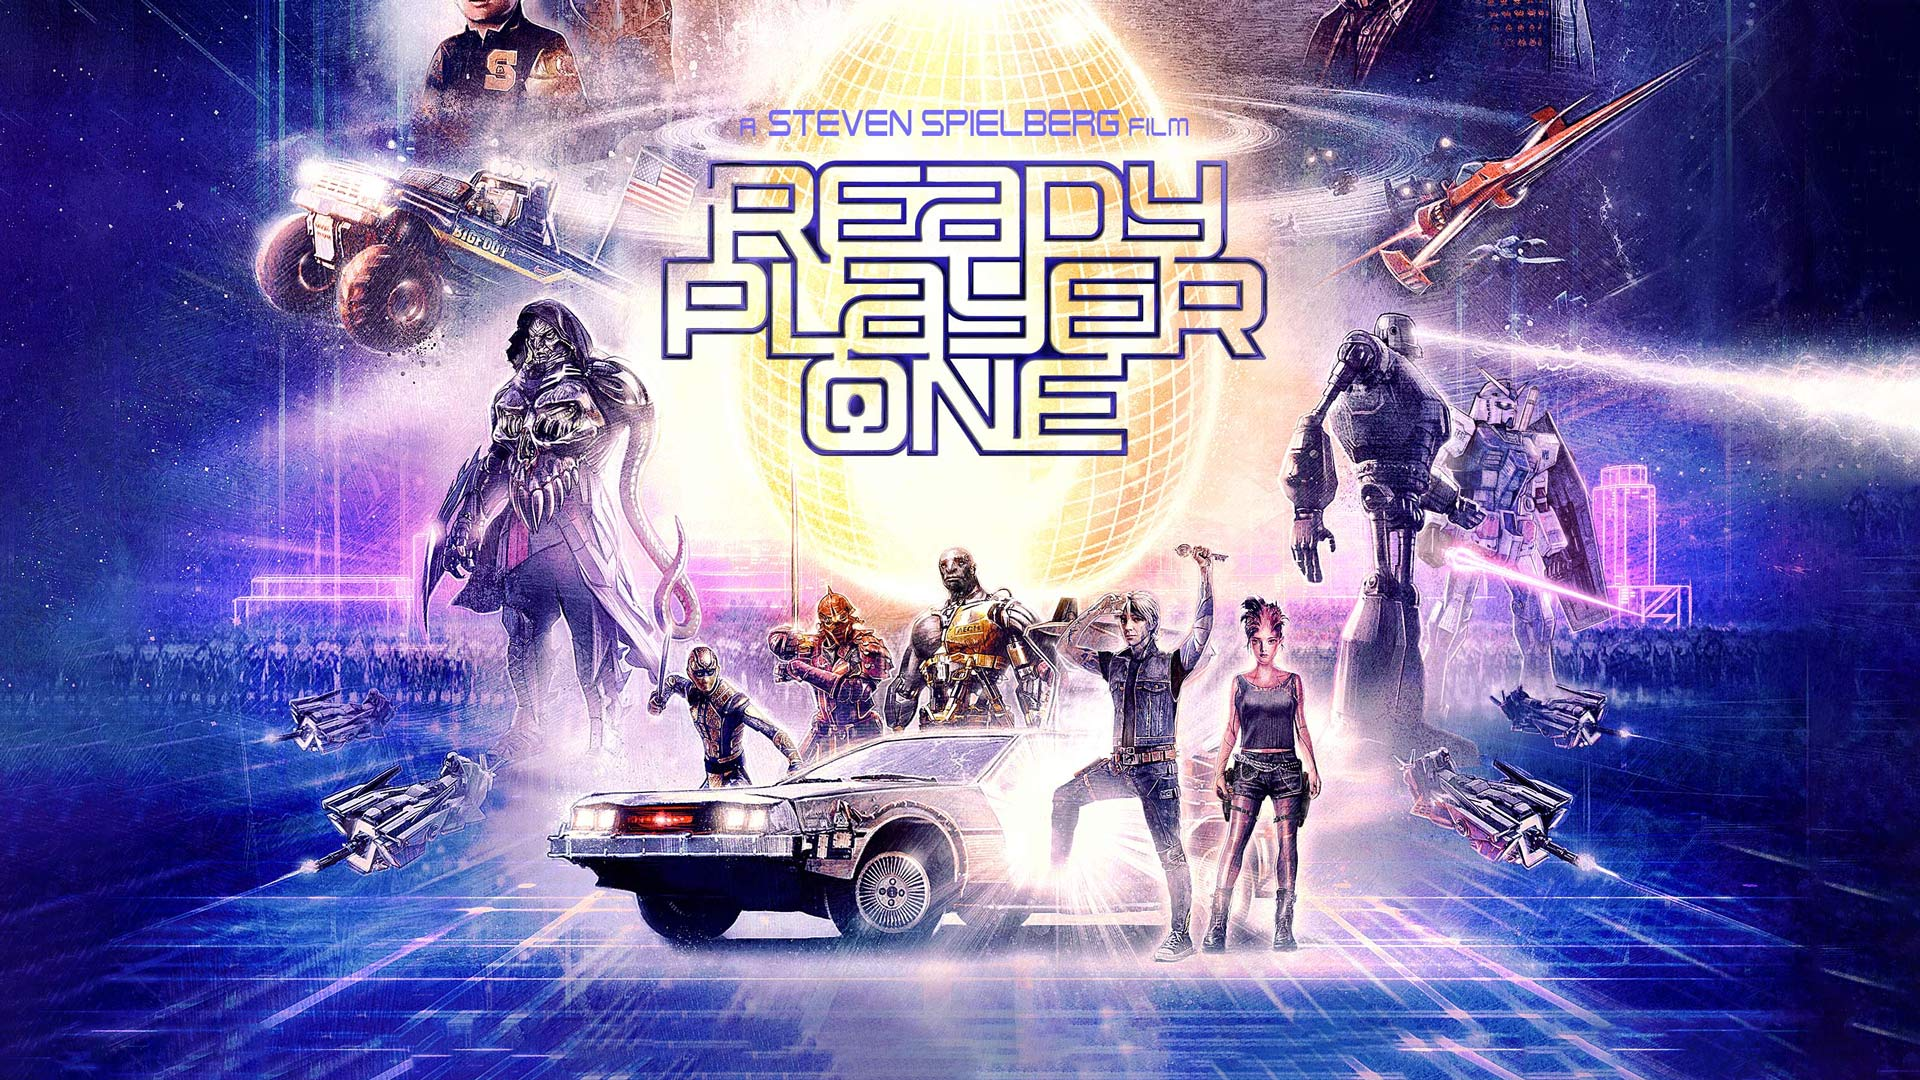 Movie Review – Ready Player One (2018)